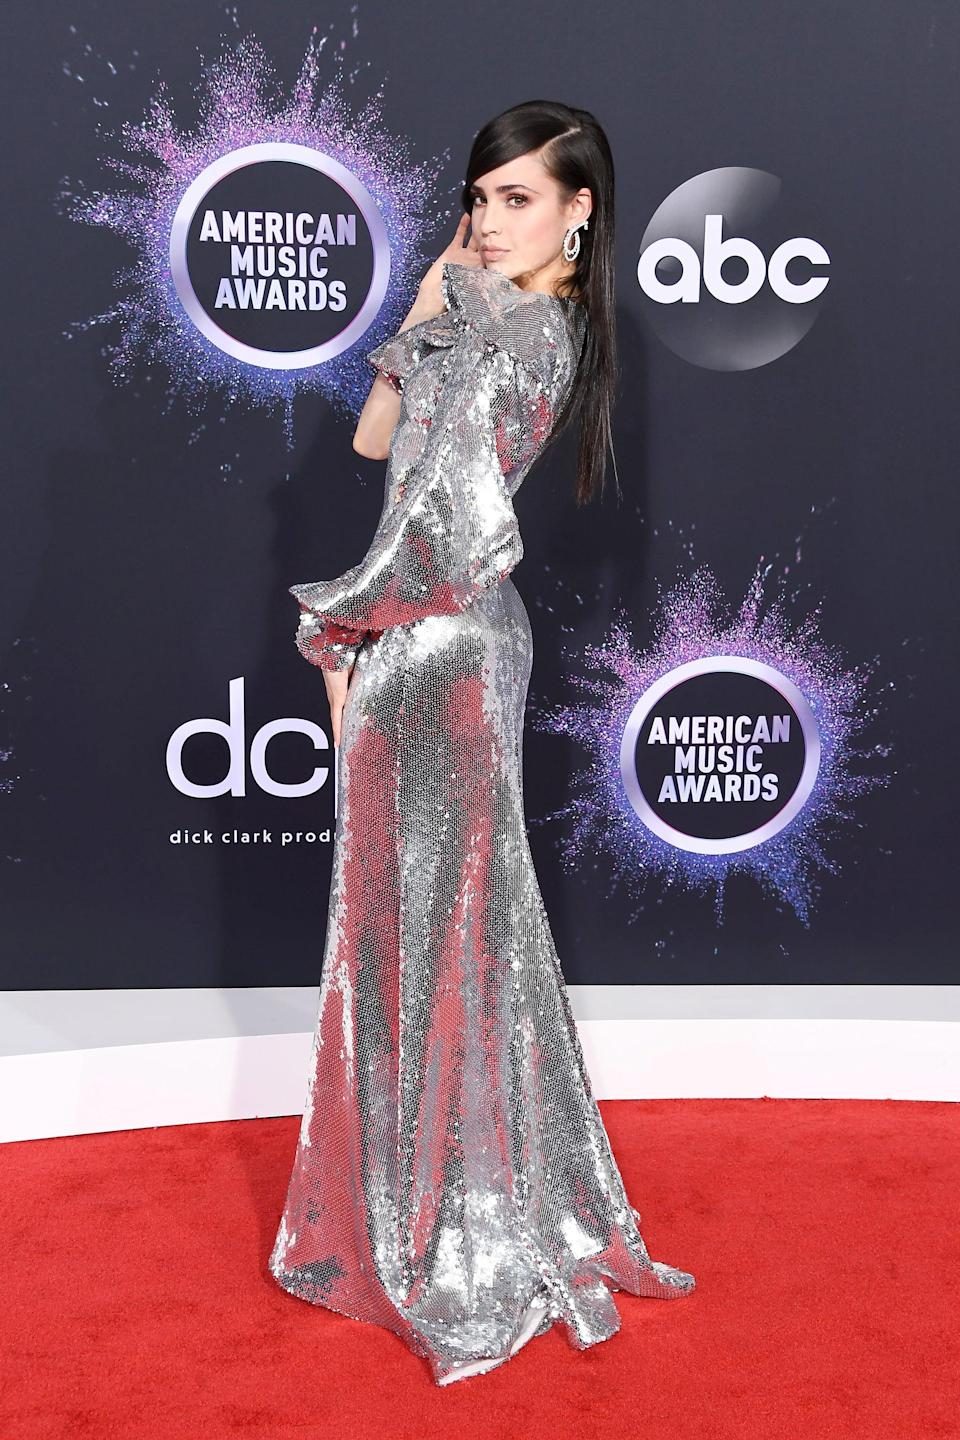 <p>The actress's shimmery silver dress looked striking from every angle.</p>